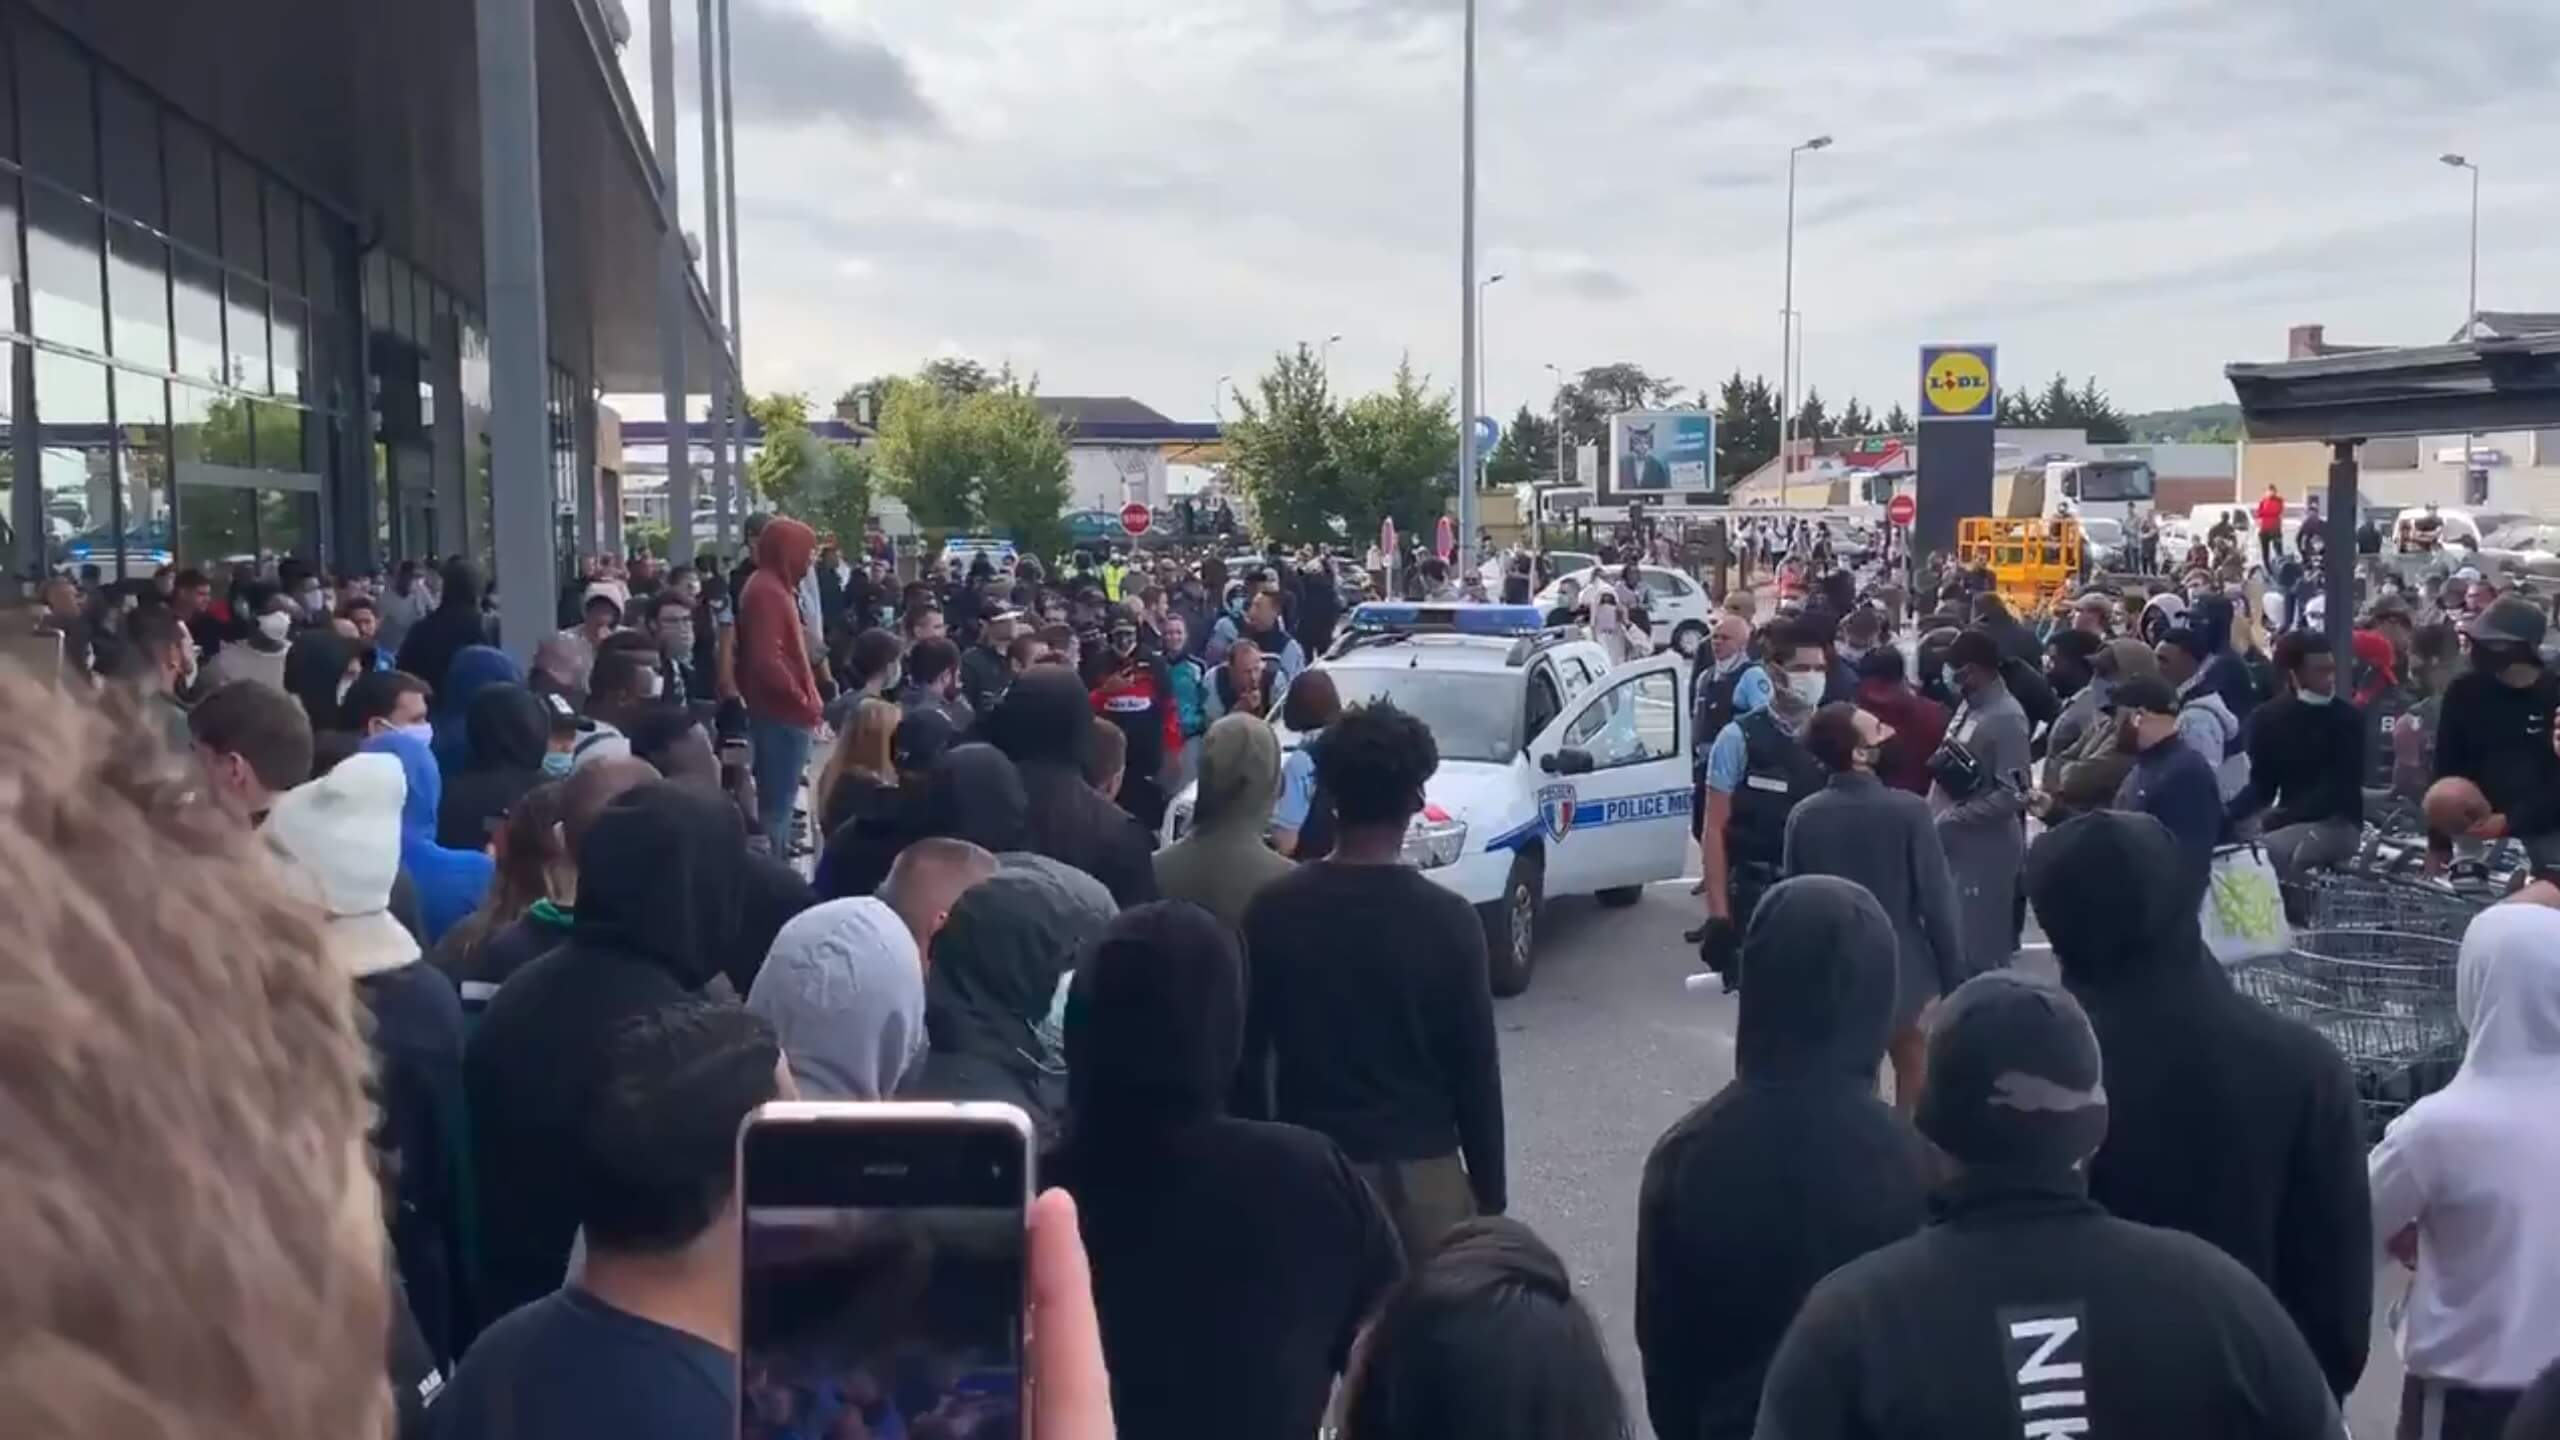 French PS4 sale leads to rowdy crowds being pepper sprayed by police